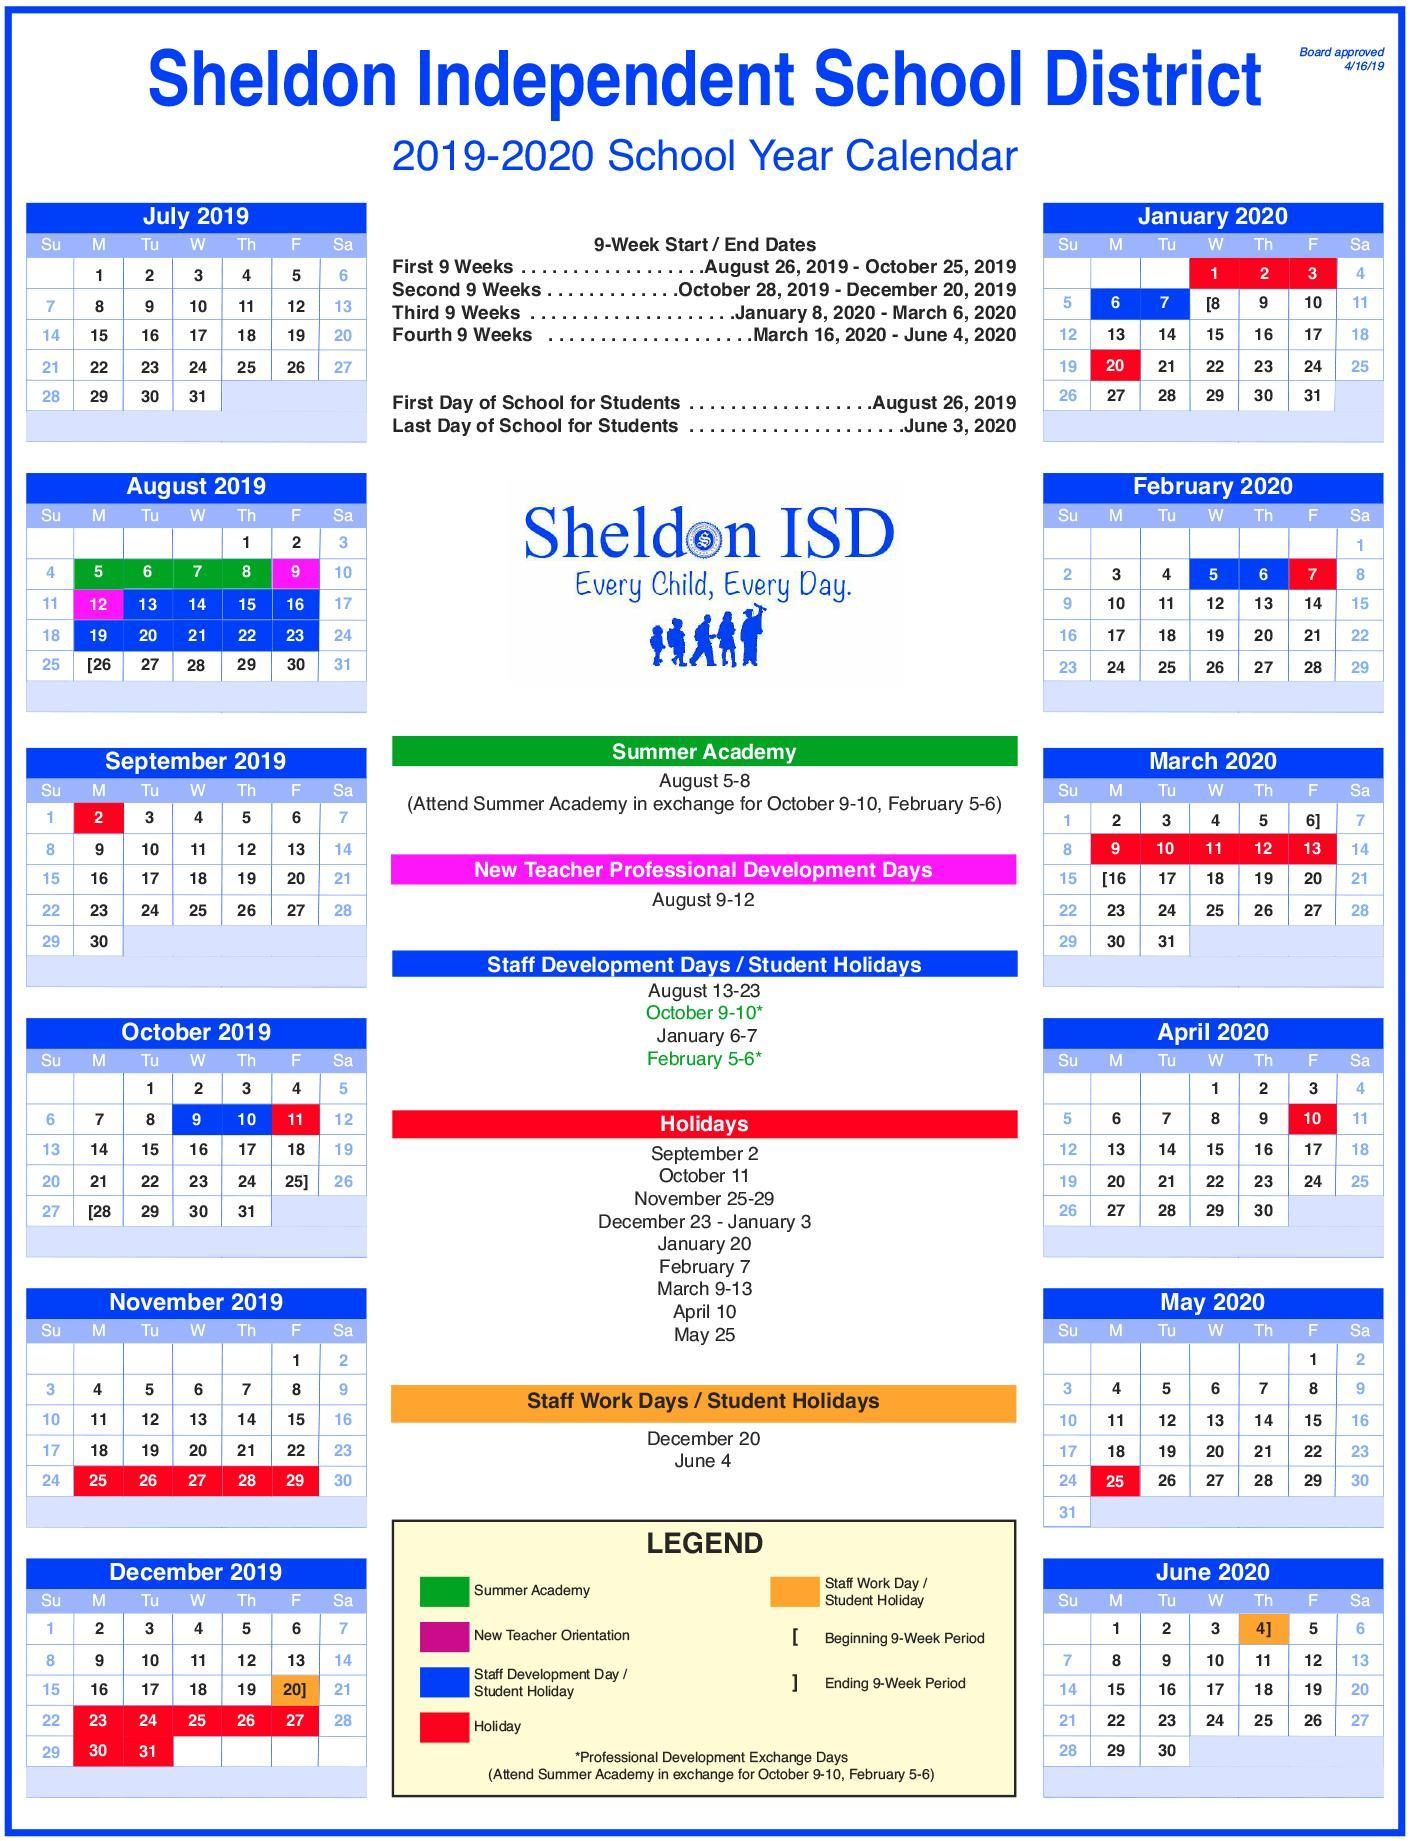 Calendario Estate 2020.Sheldon Isd